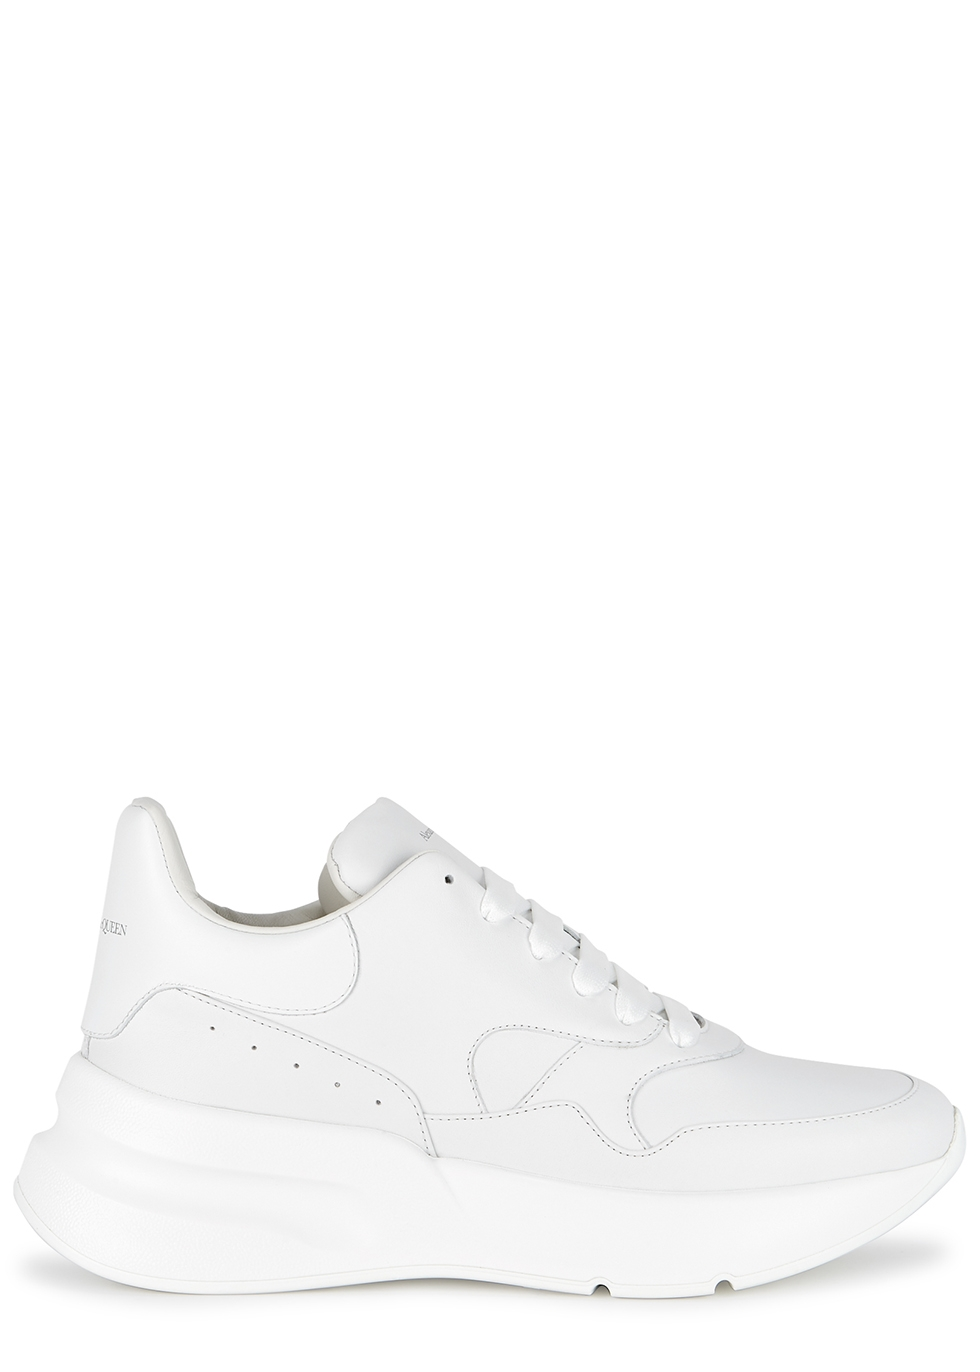 Oversized Runner white leather sneakers